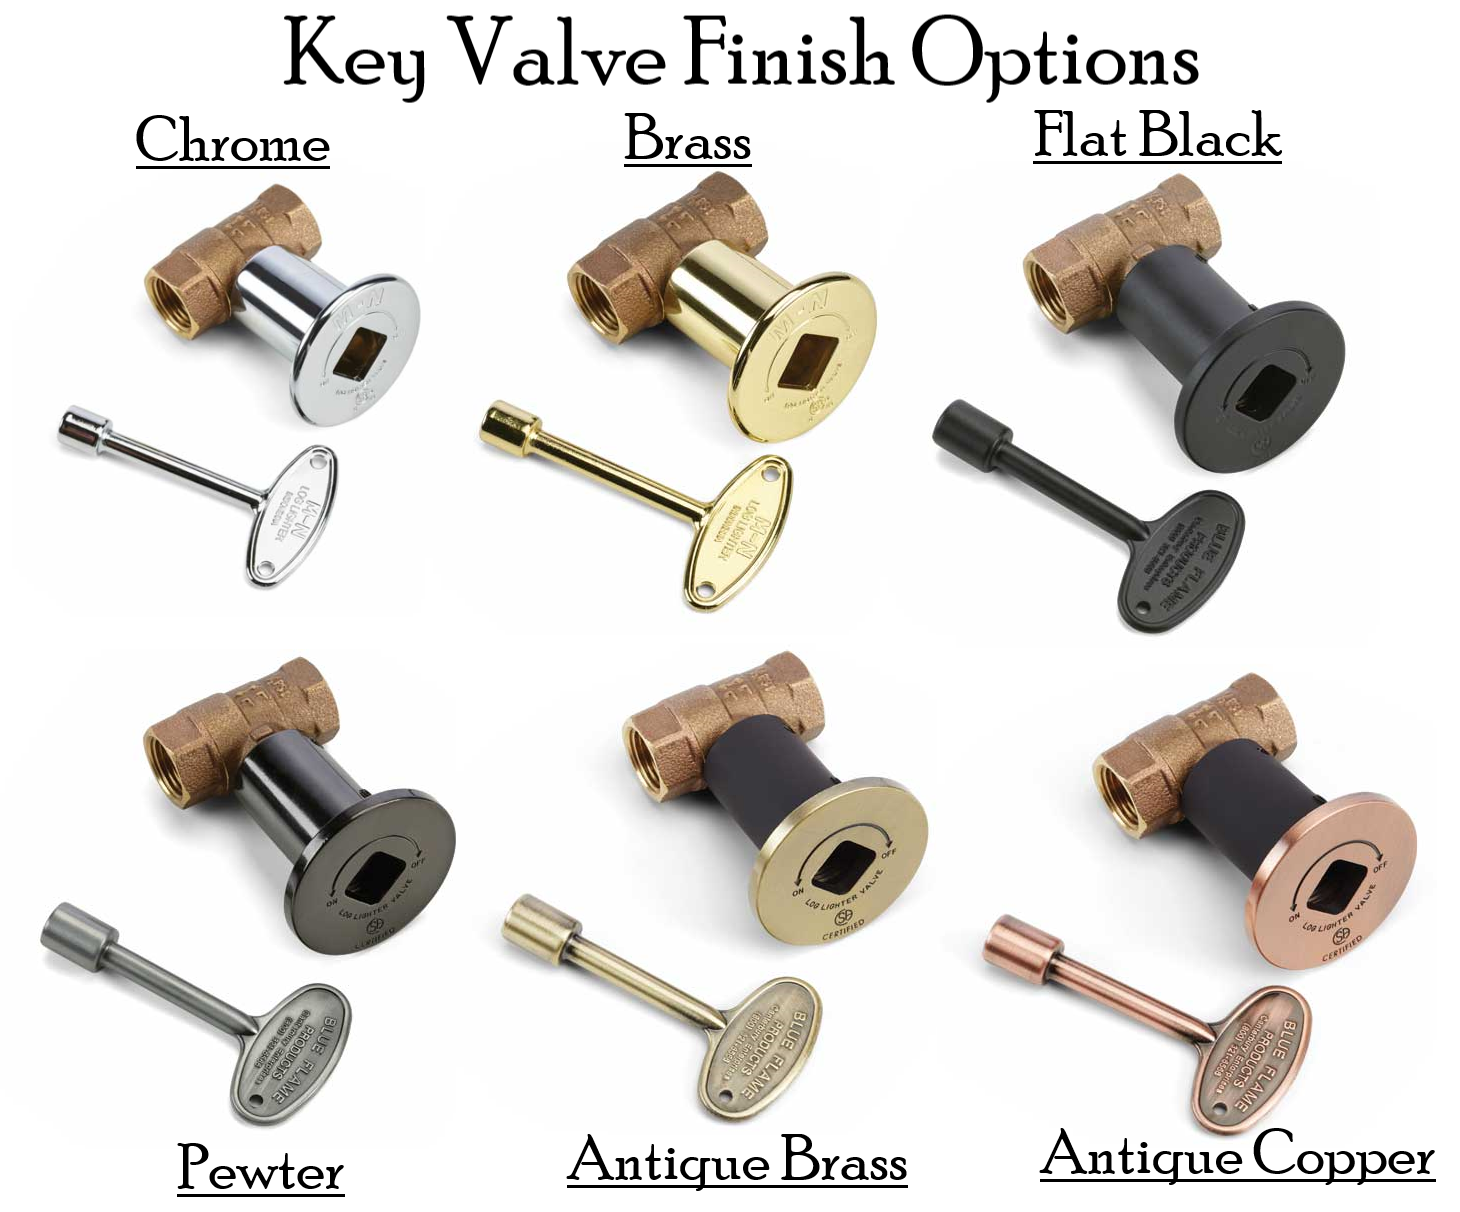 Key Valve Finishes